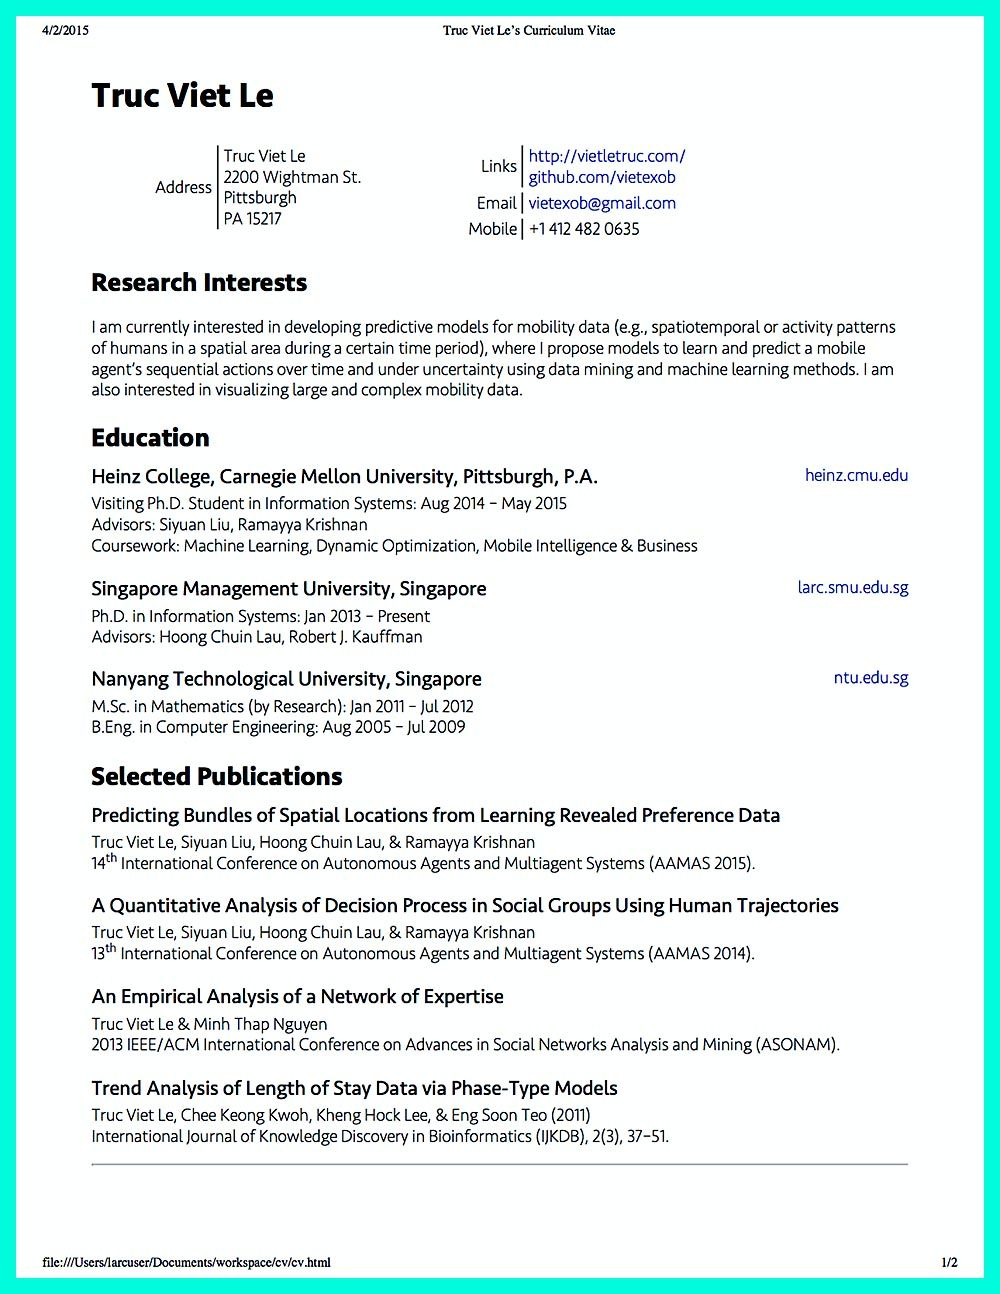 Data Scientist Resume Include Everything About Your Education, Skill,  Qualification And Your Previous Experience  Data Scientist Resume